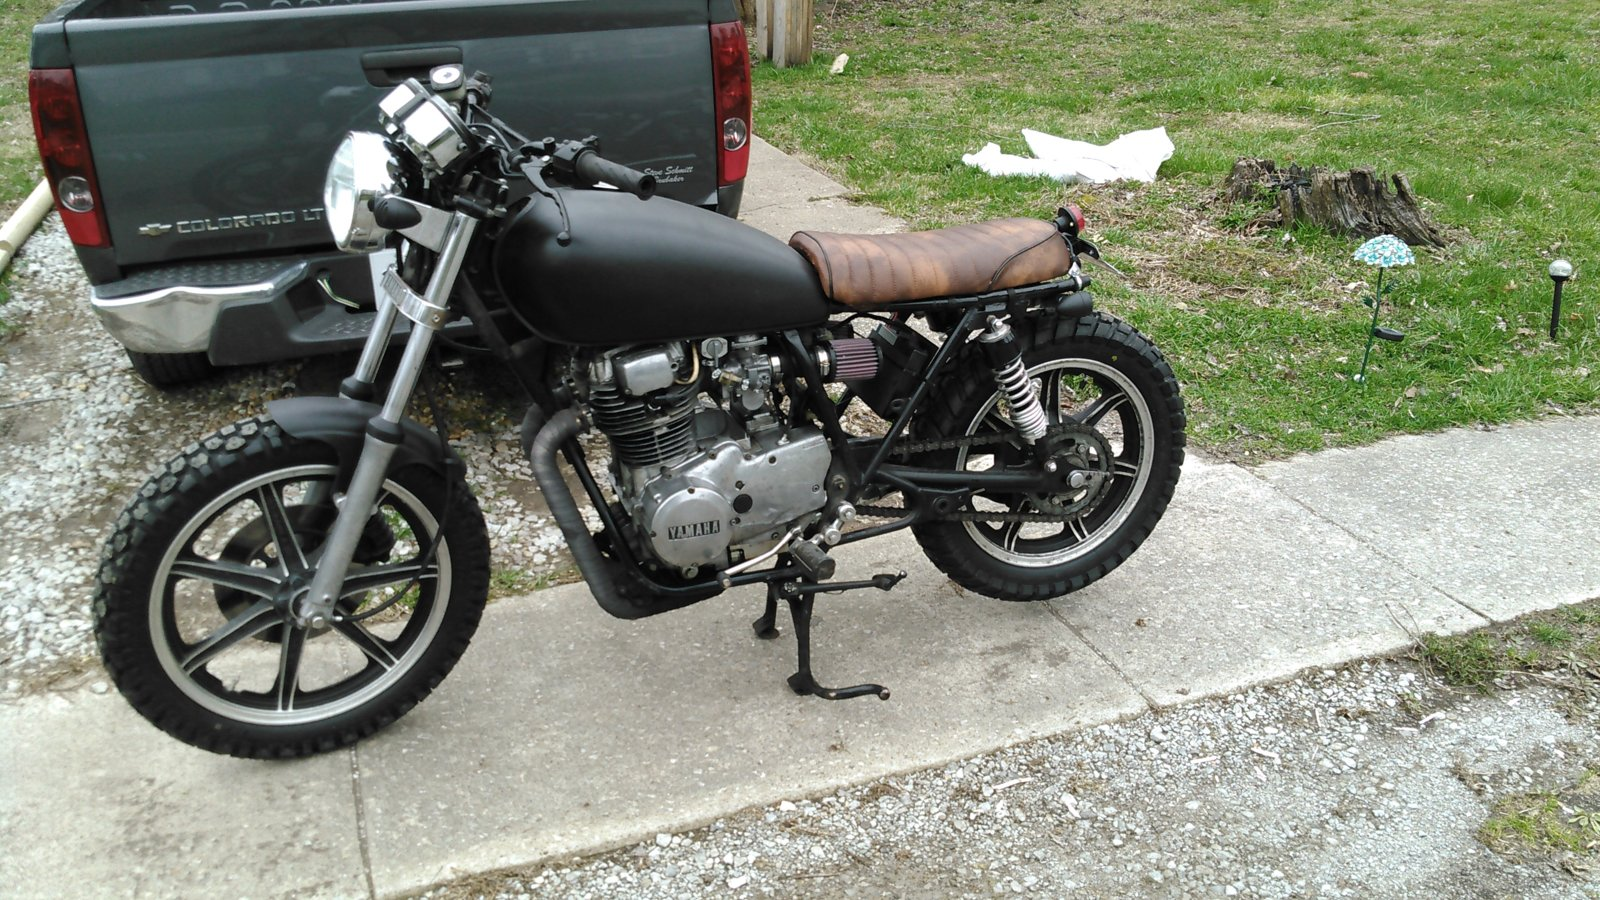 Miraculous Current State Of The Xs400 Scrambler Project Yamaha Xs400 Dailytribune Chair Design For Home Dailytribuneorg